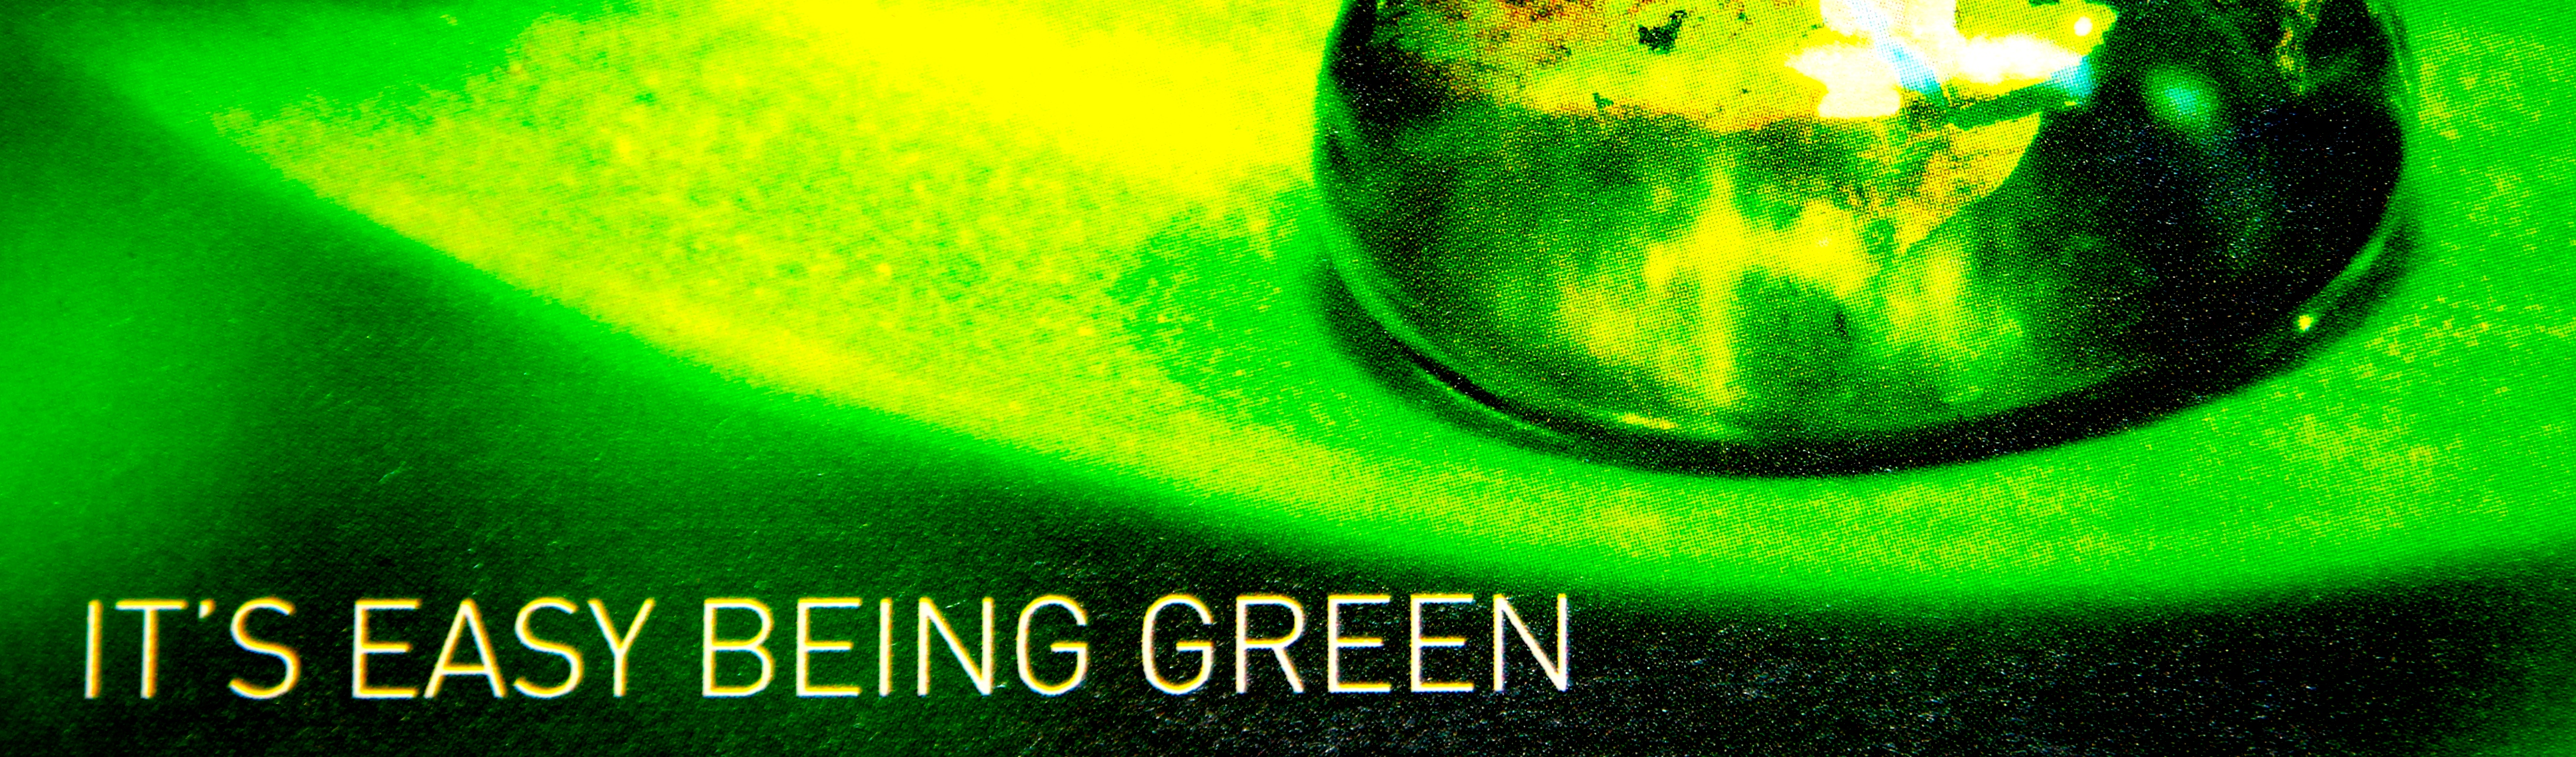 easy being green Easy being green is one of the largest energy efficiency operators in australia it was established in 2004 and have been responsible for organising mass consumer action on energy efficiency as of 2013 the company had aided over 750,000 homes and businesses with energy efficiency.